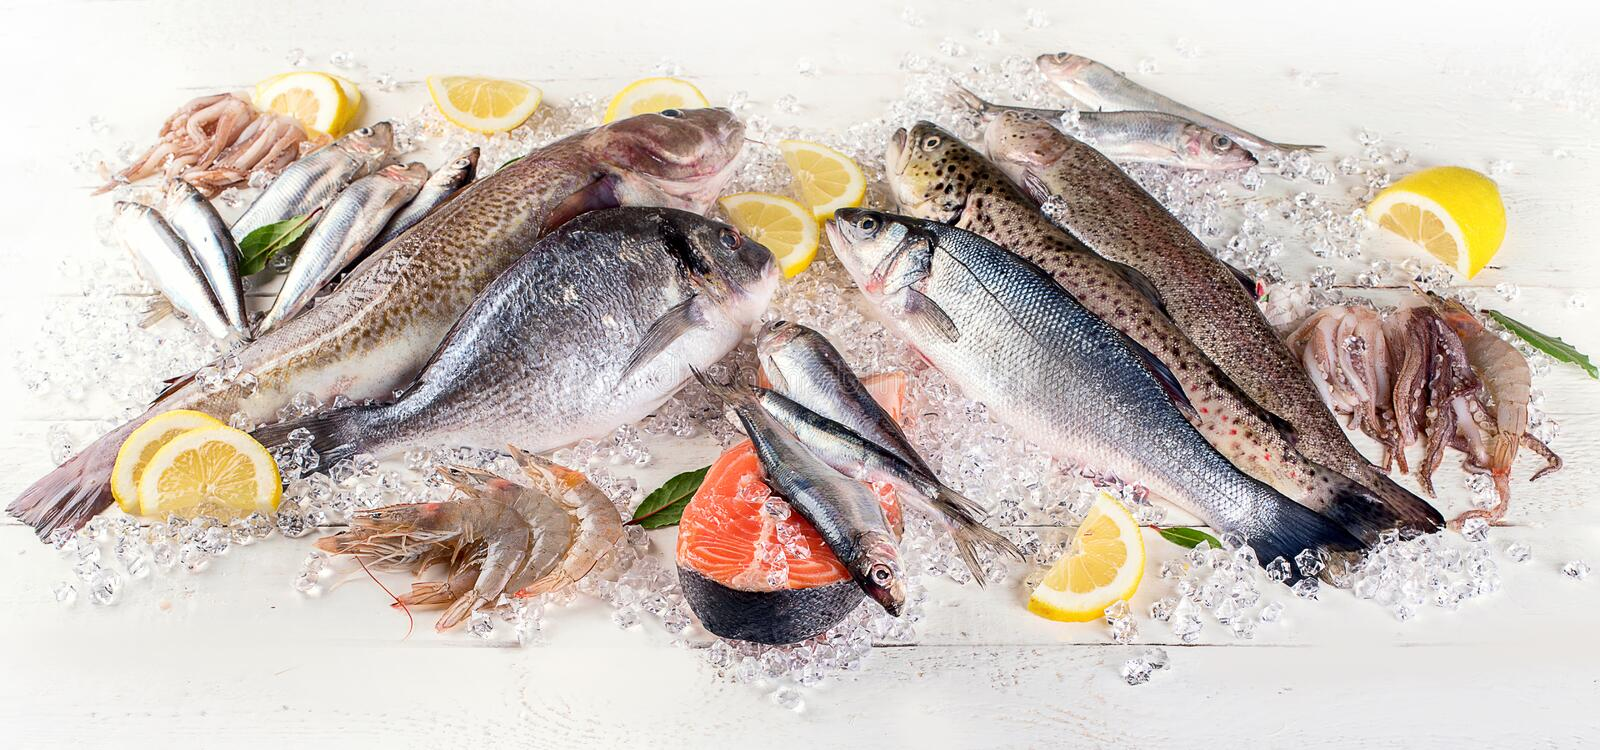 Fresh fish and seafood on white wooden background. Healthy eating. royalty free stock image